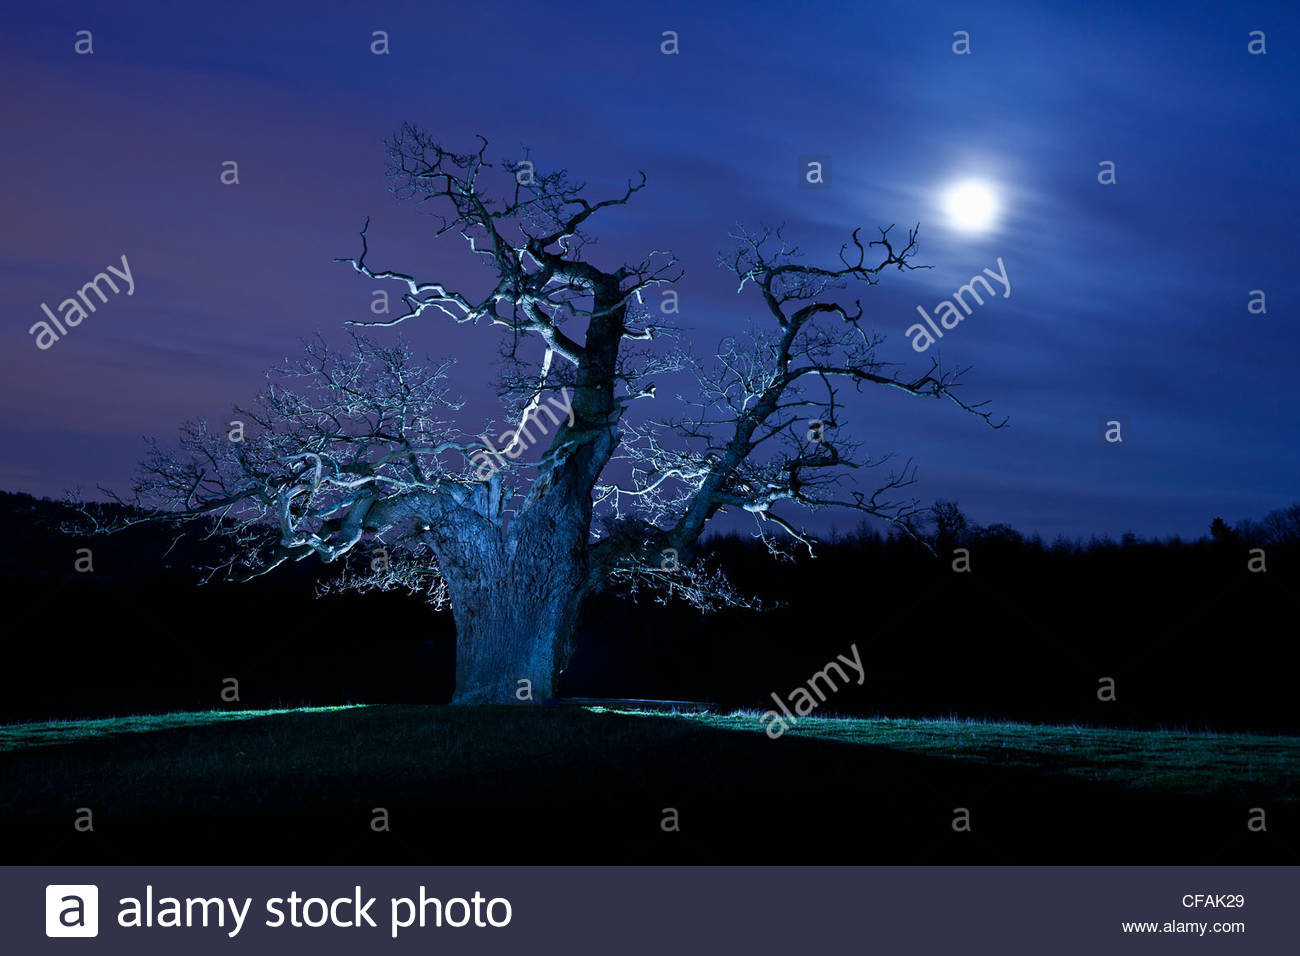 Twisted tree lit up at night - Stock Image